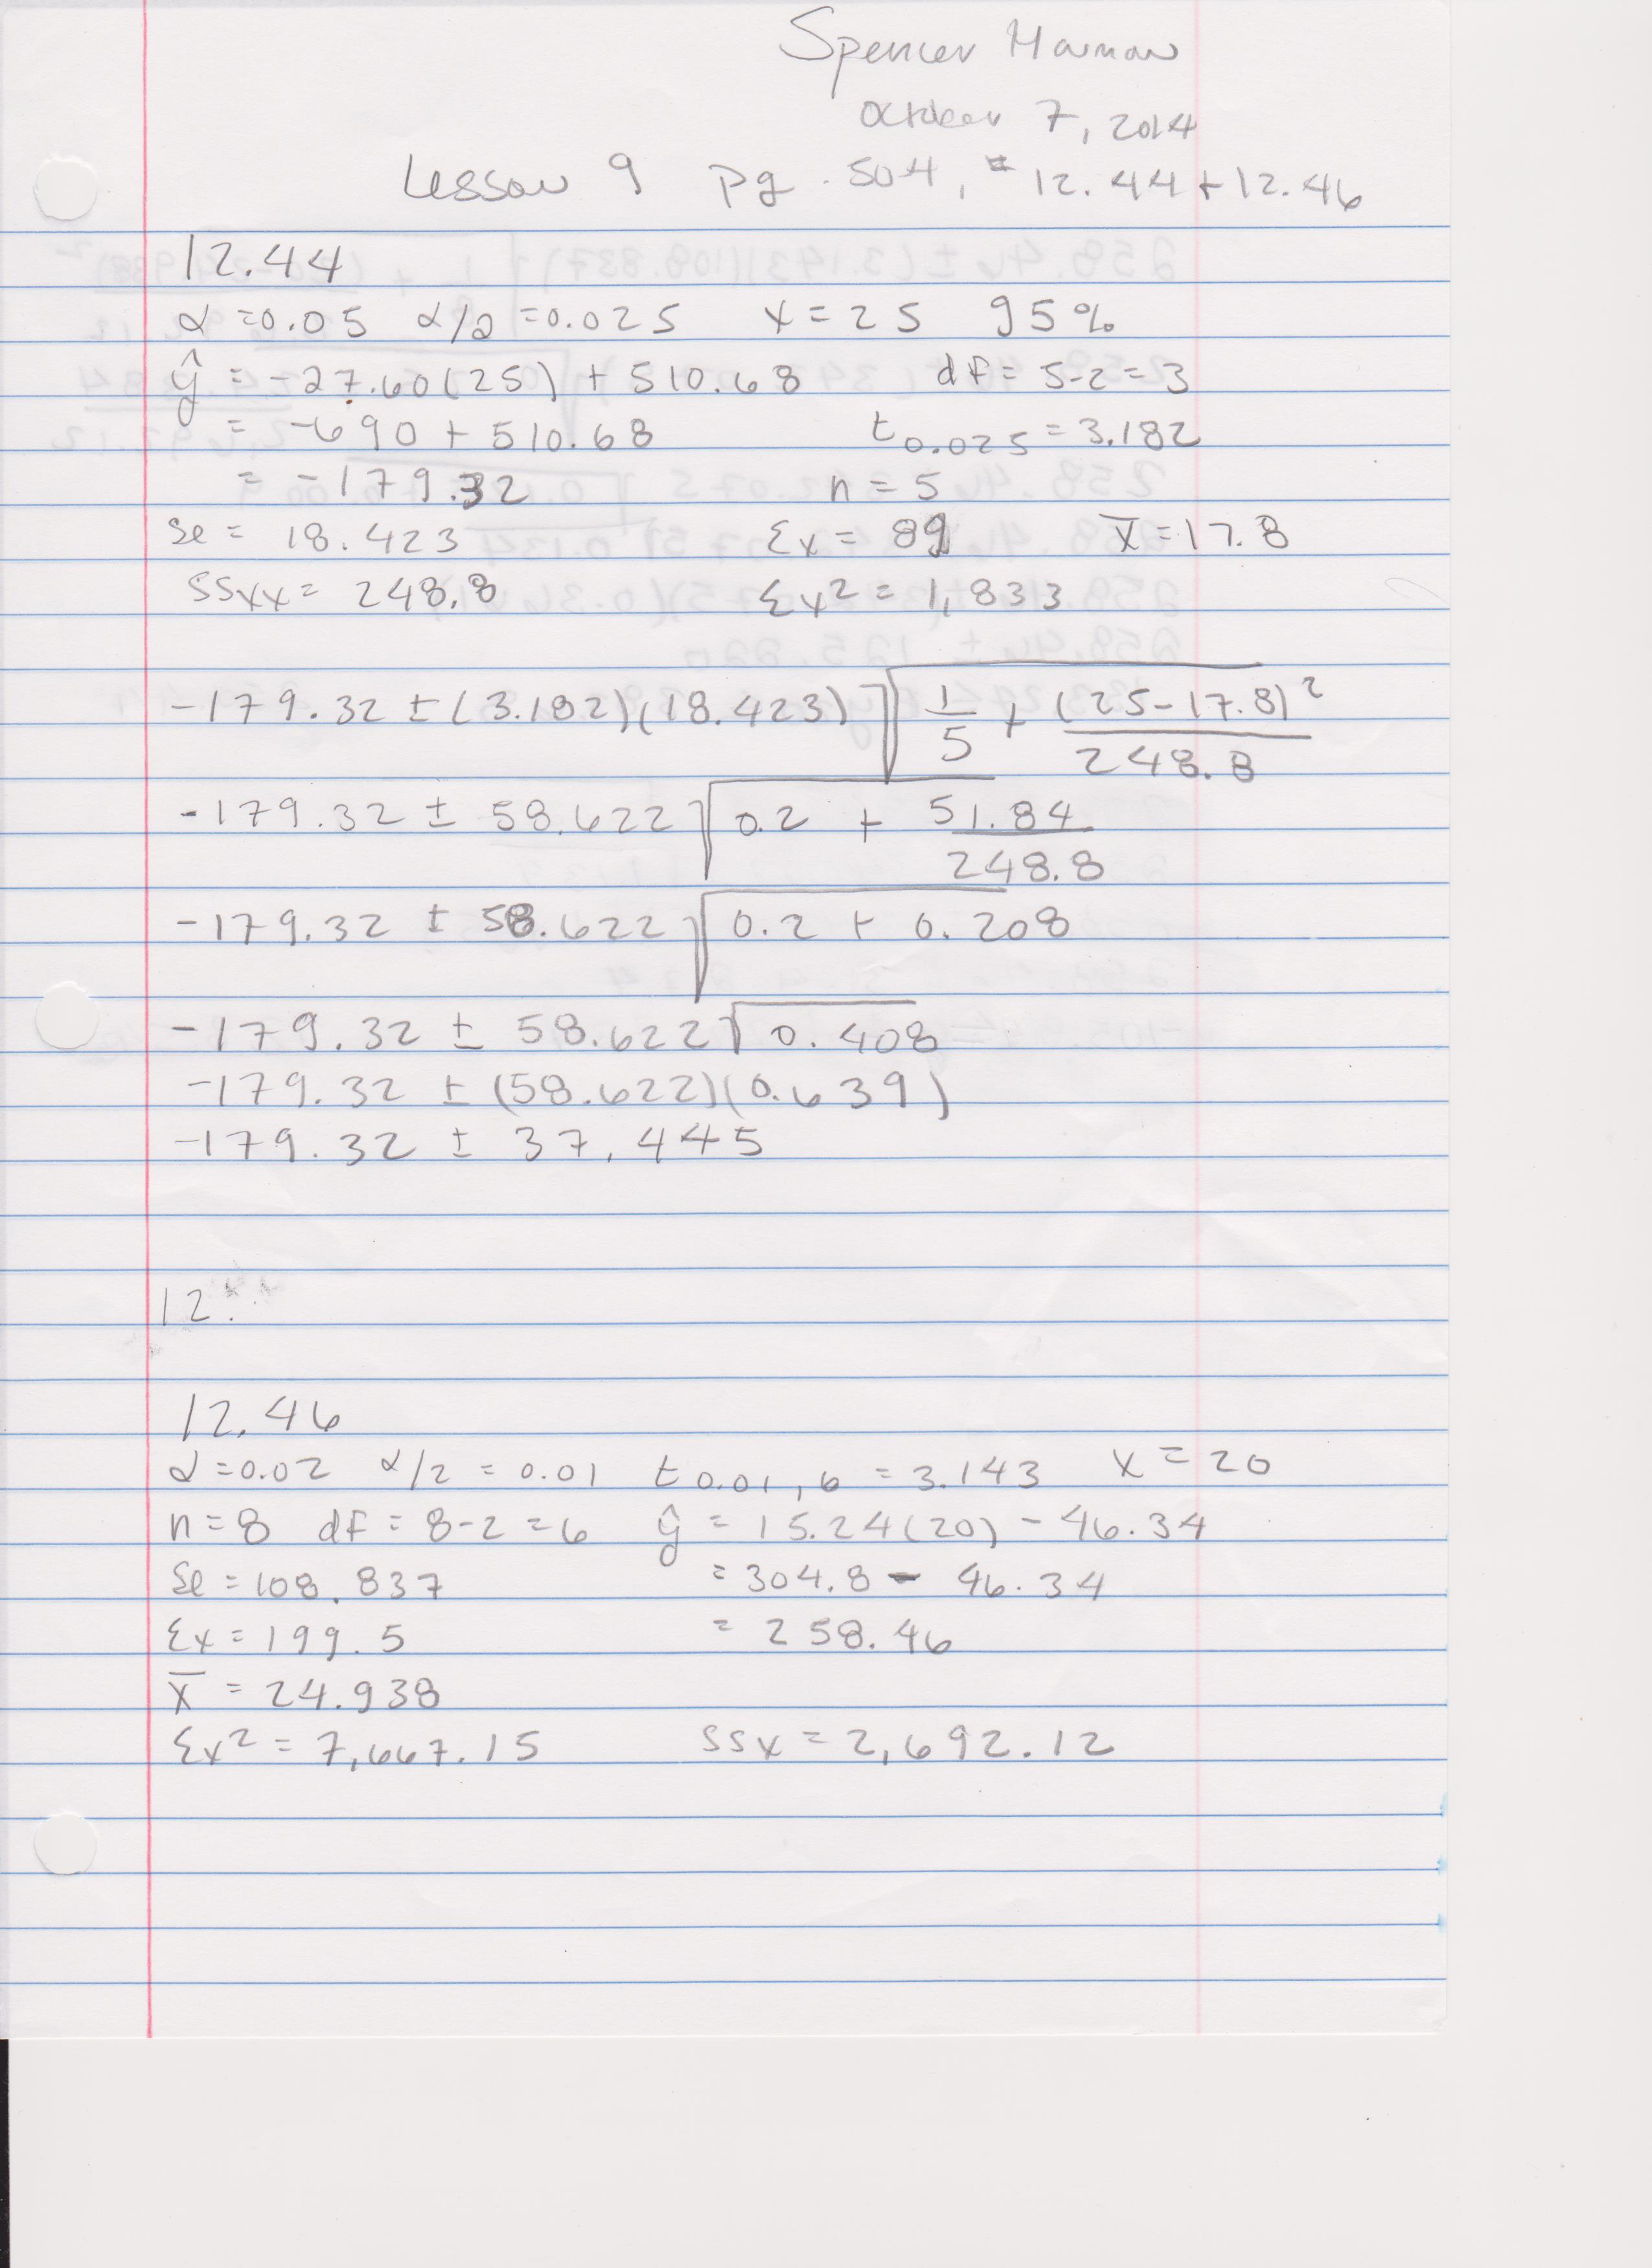 Lesson 9 Assignment: Complete Problems 12.44, 12.46 on p